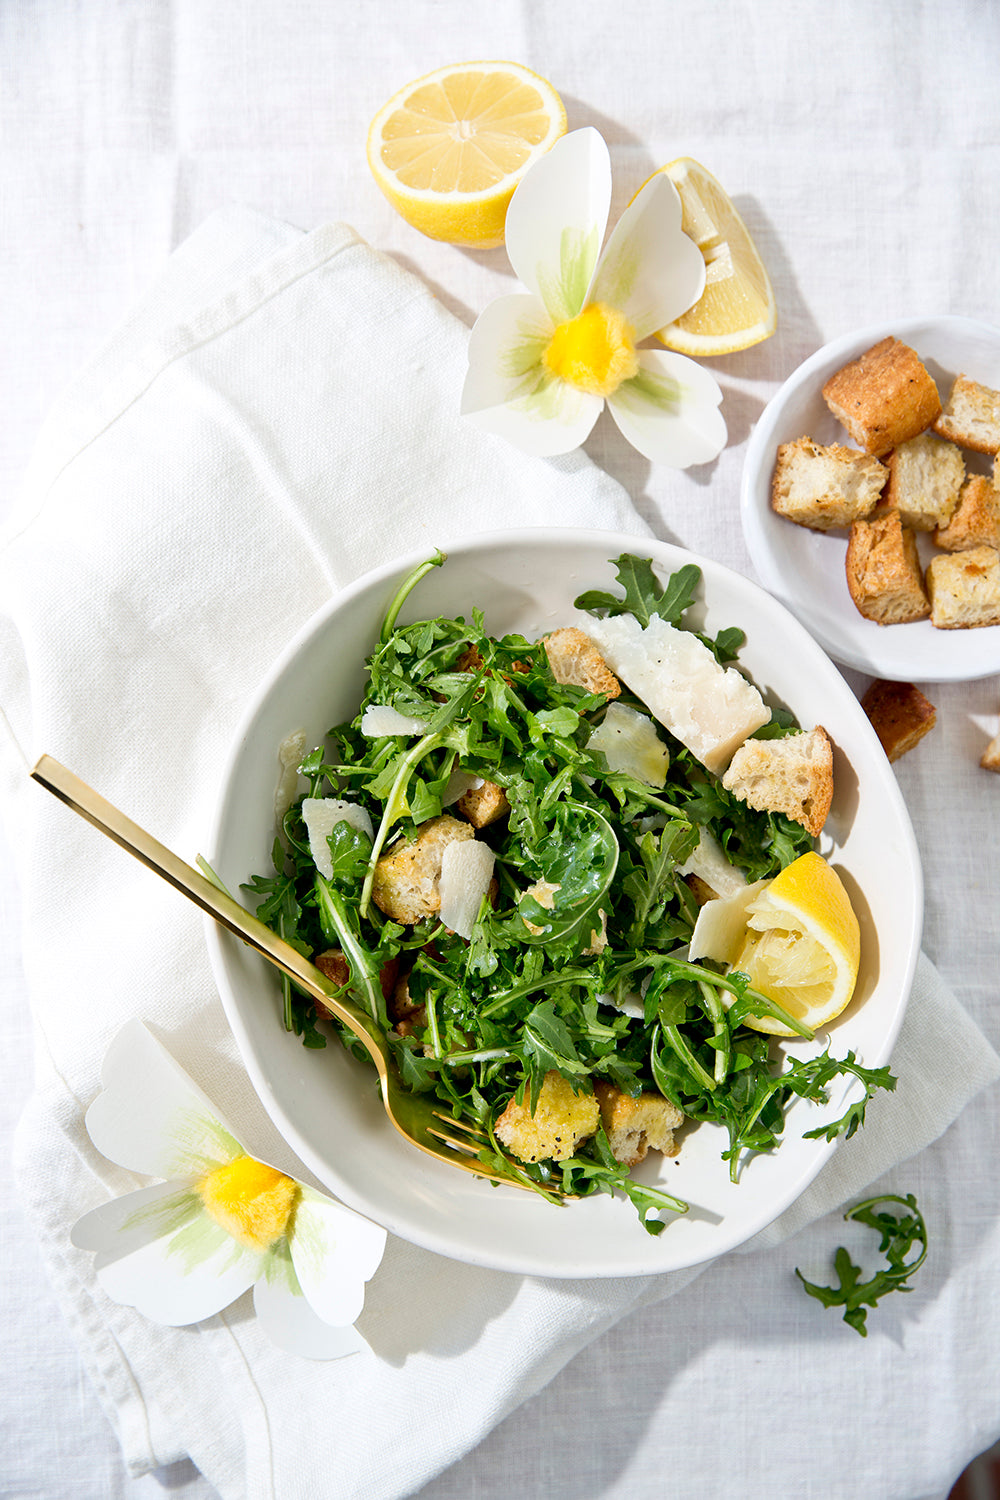 Wild Arugula Salad with Garlic Croutons, Shaved Parmesan, and Caramelized Lemon